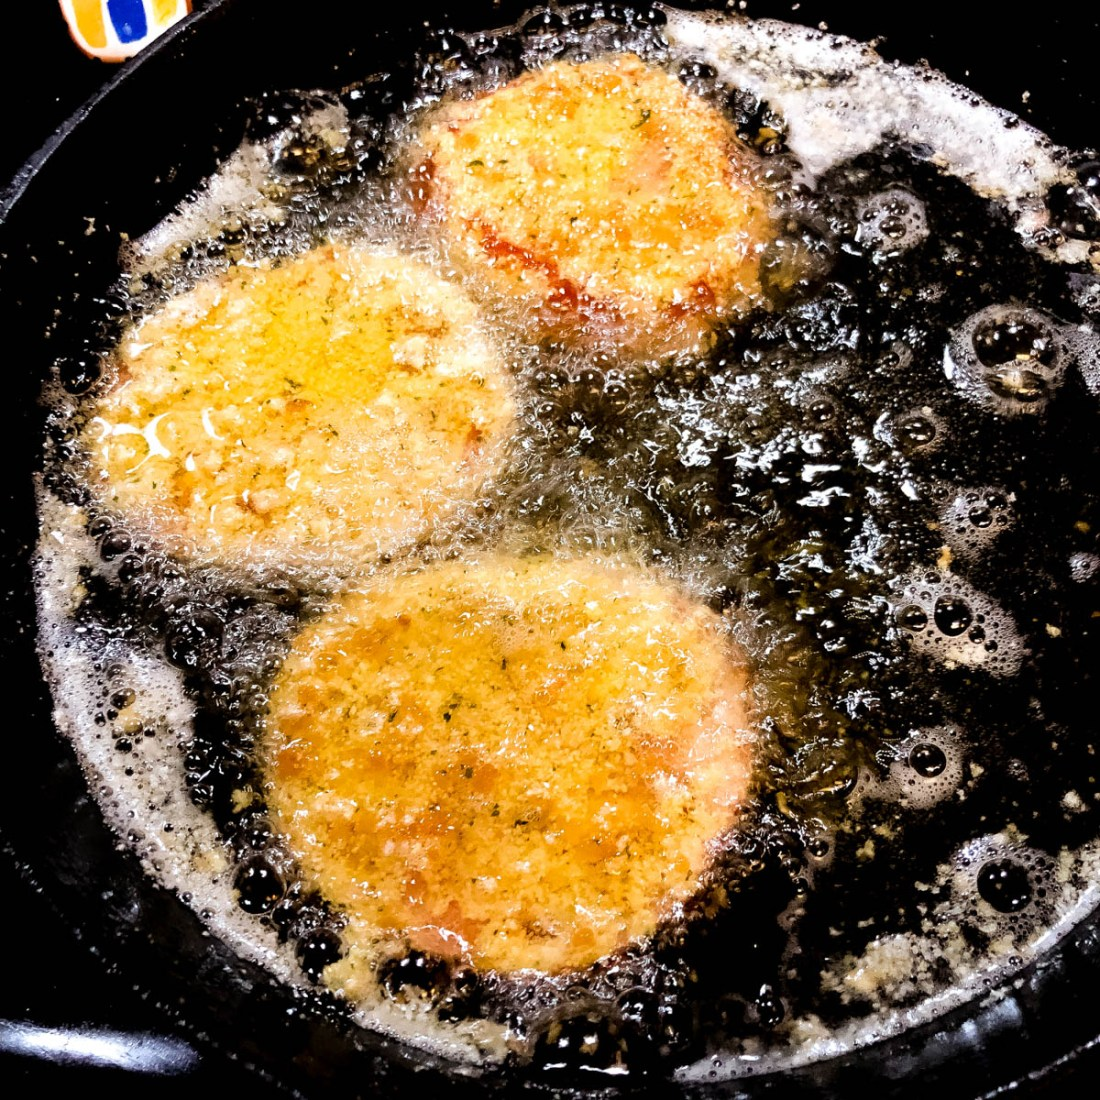 Gluten free battered red tomatoes frying in a cast iron skillet.